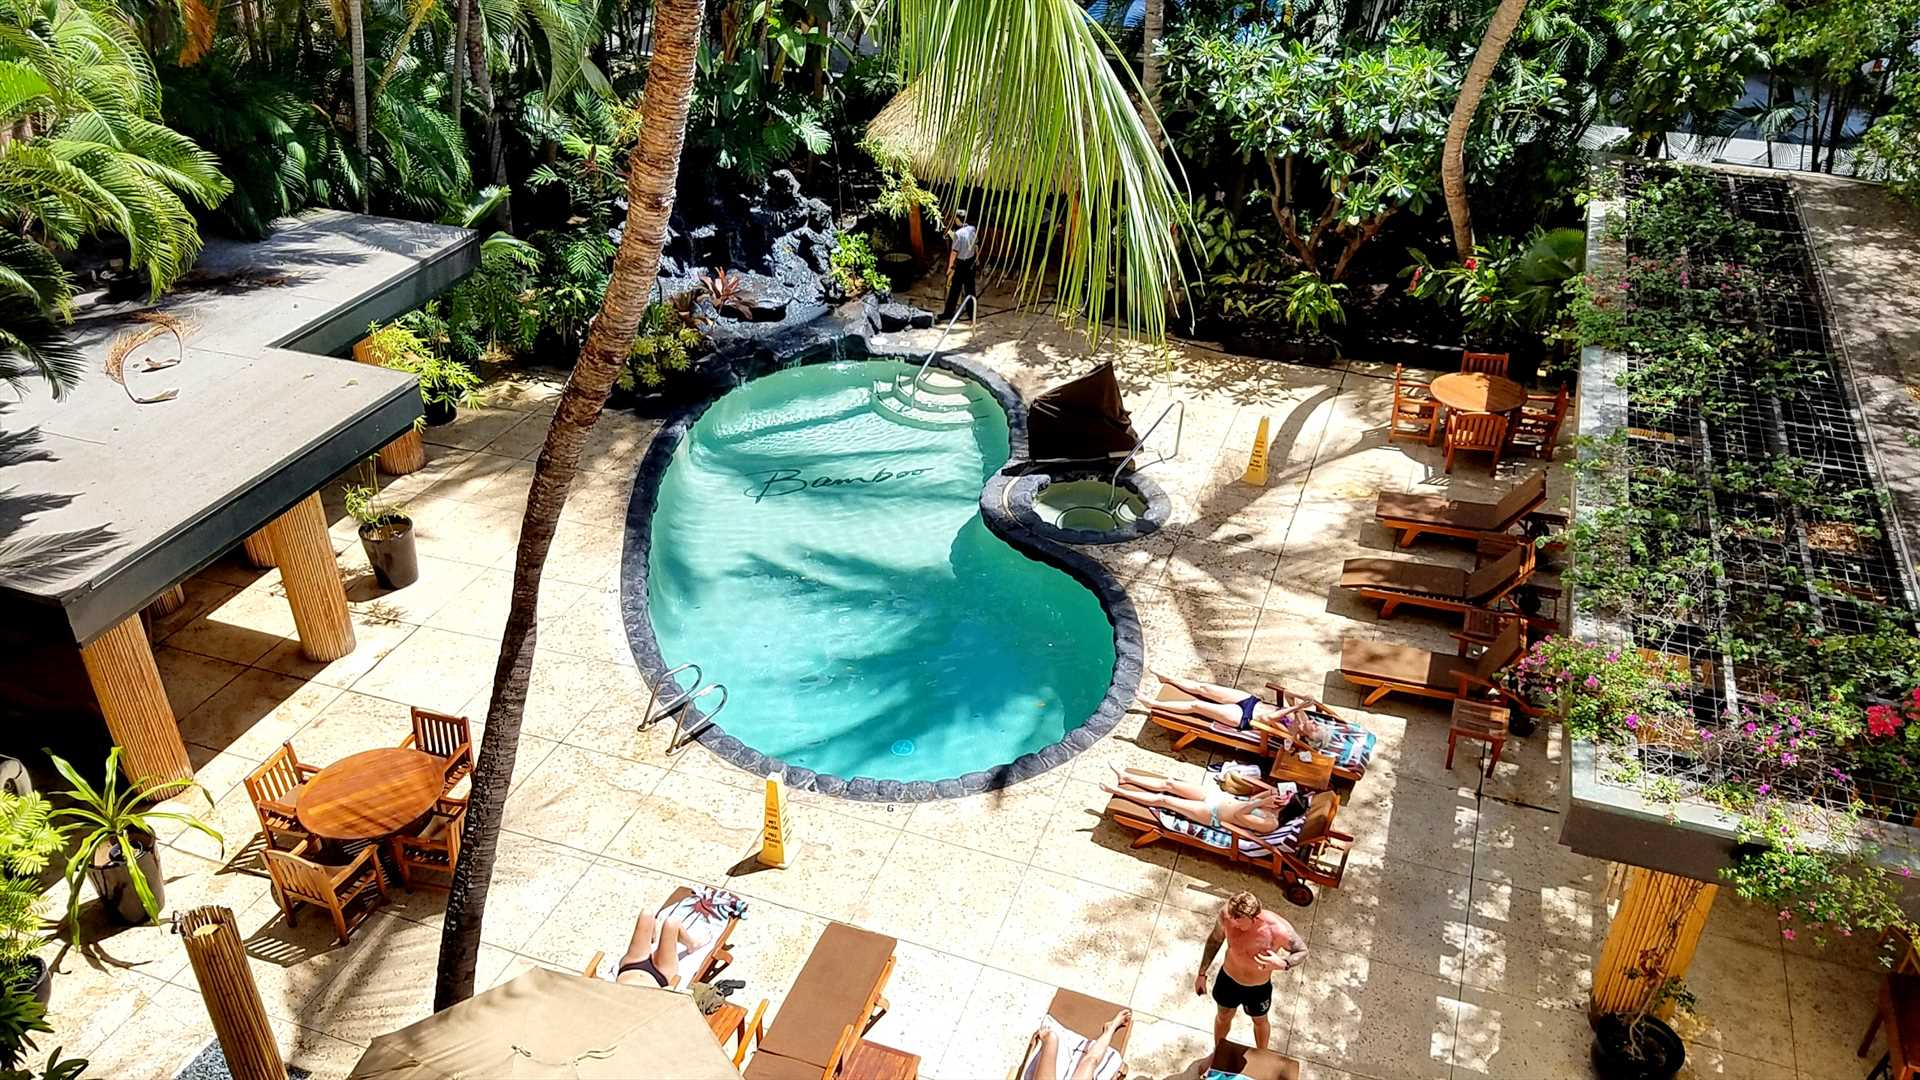 The Bamboo is a charming, boutique resort with lots of amenities including a pool, Jacuzzi, waterfalls, Tiki hut, BBQ, sauna, a beautiful lobby, free wireless internet and very friendly staff. There is also a poolside restaurant.